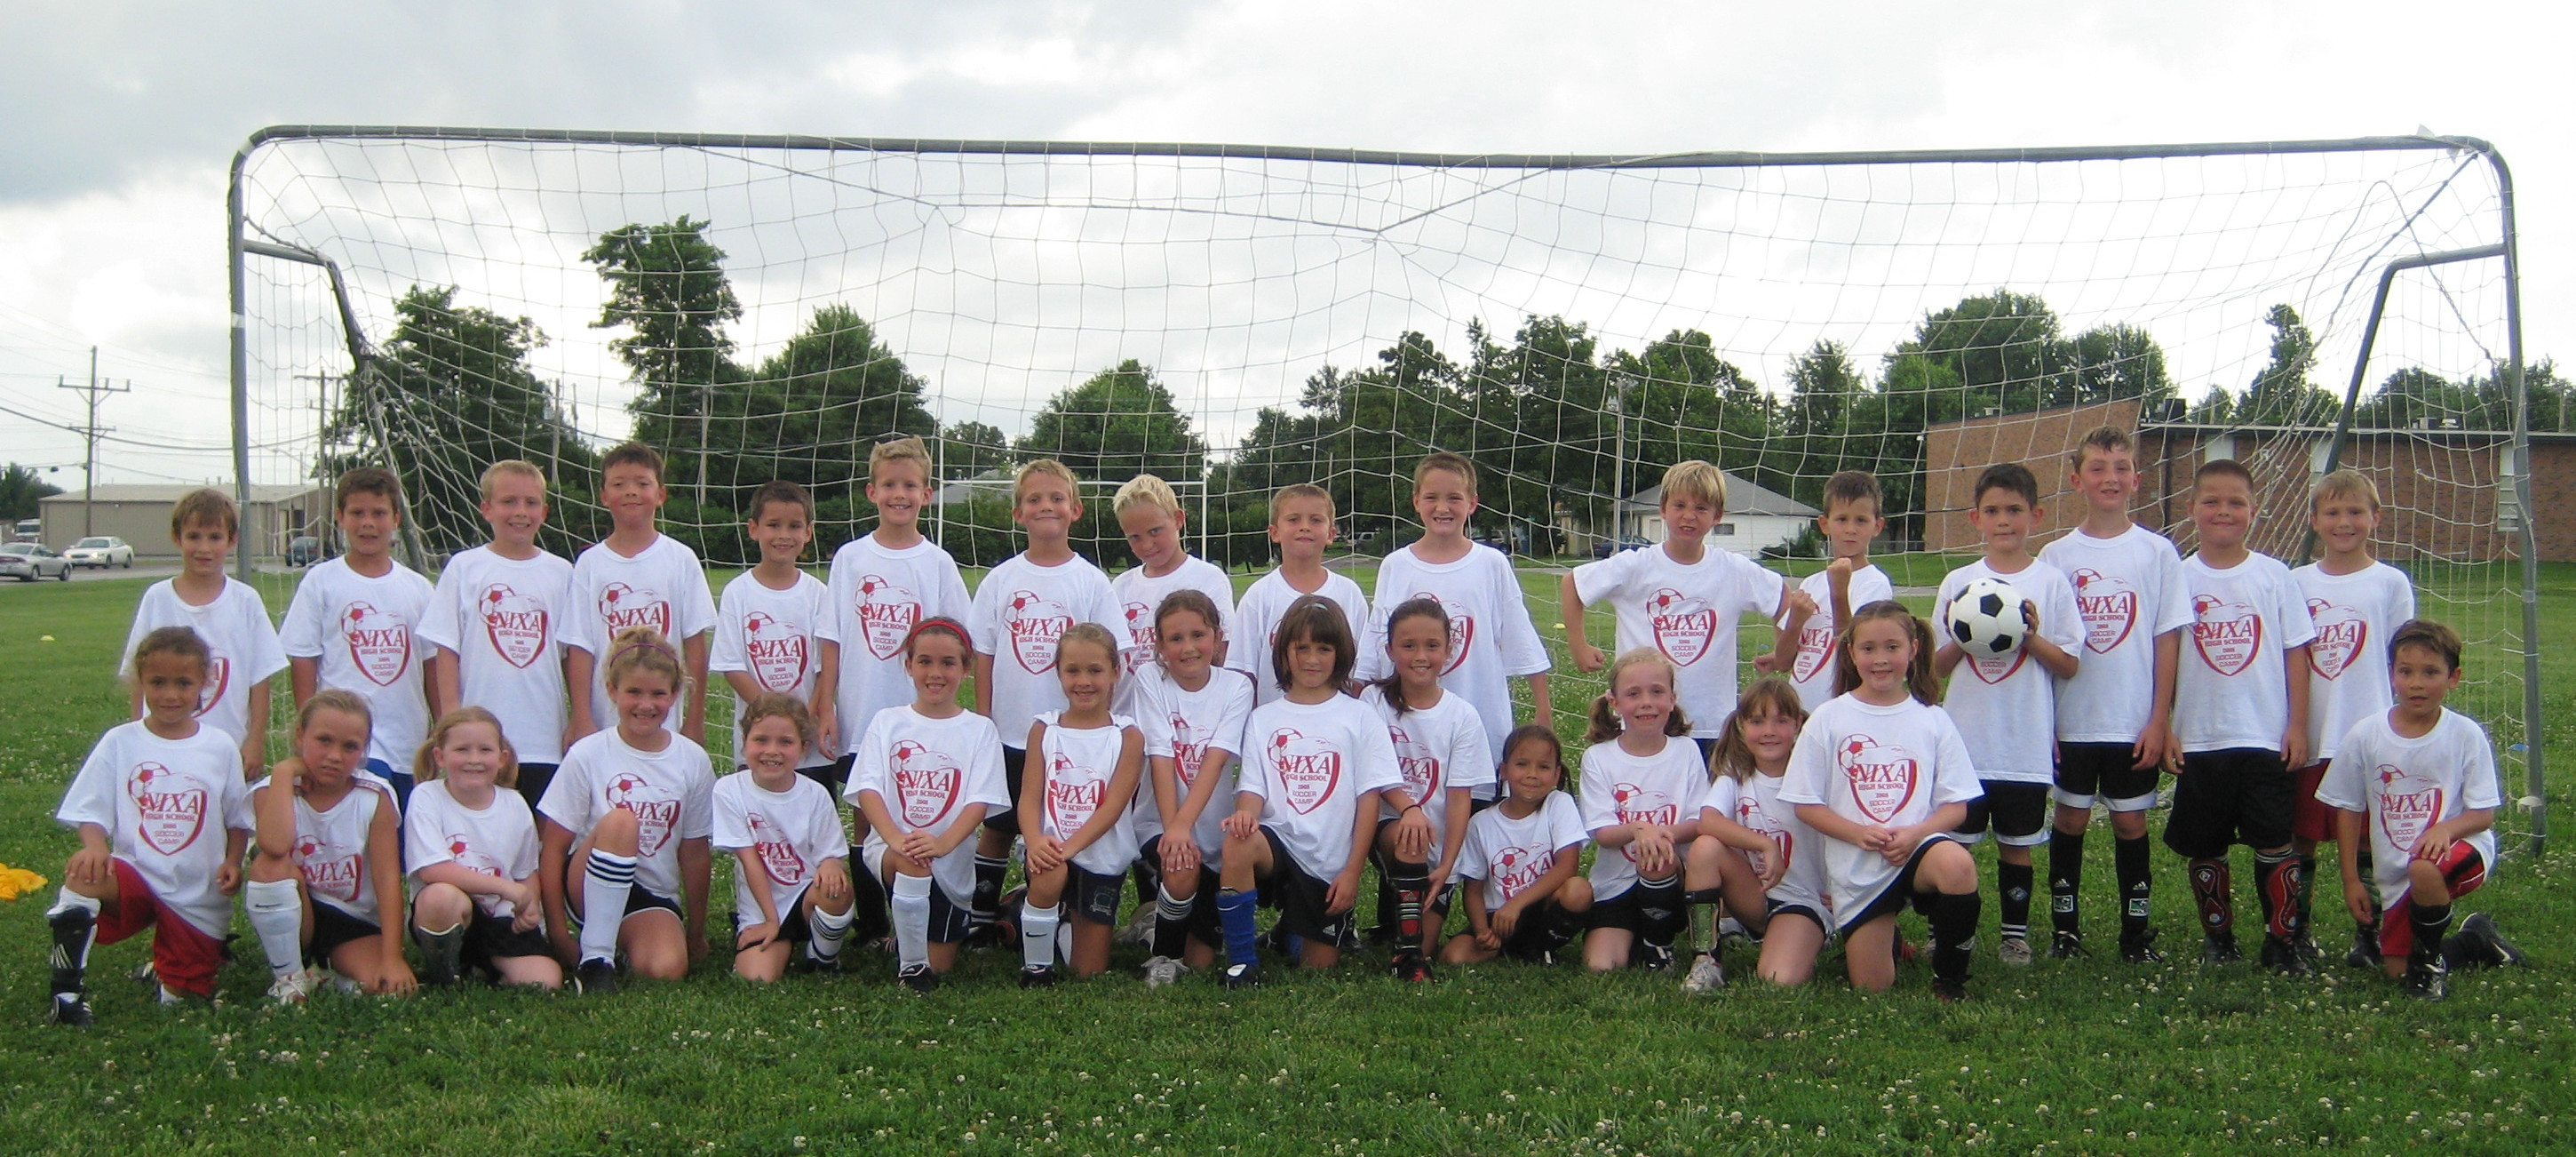 2nd and 3rd Graders (taken at the end of camp!)